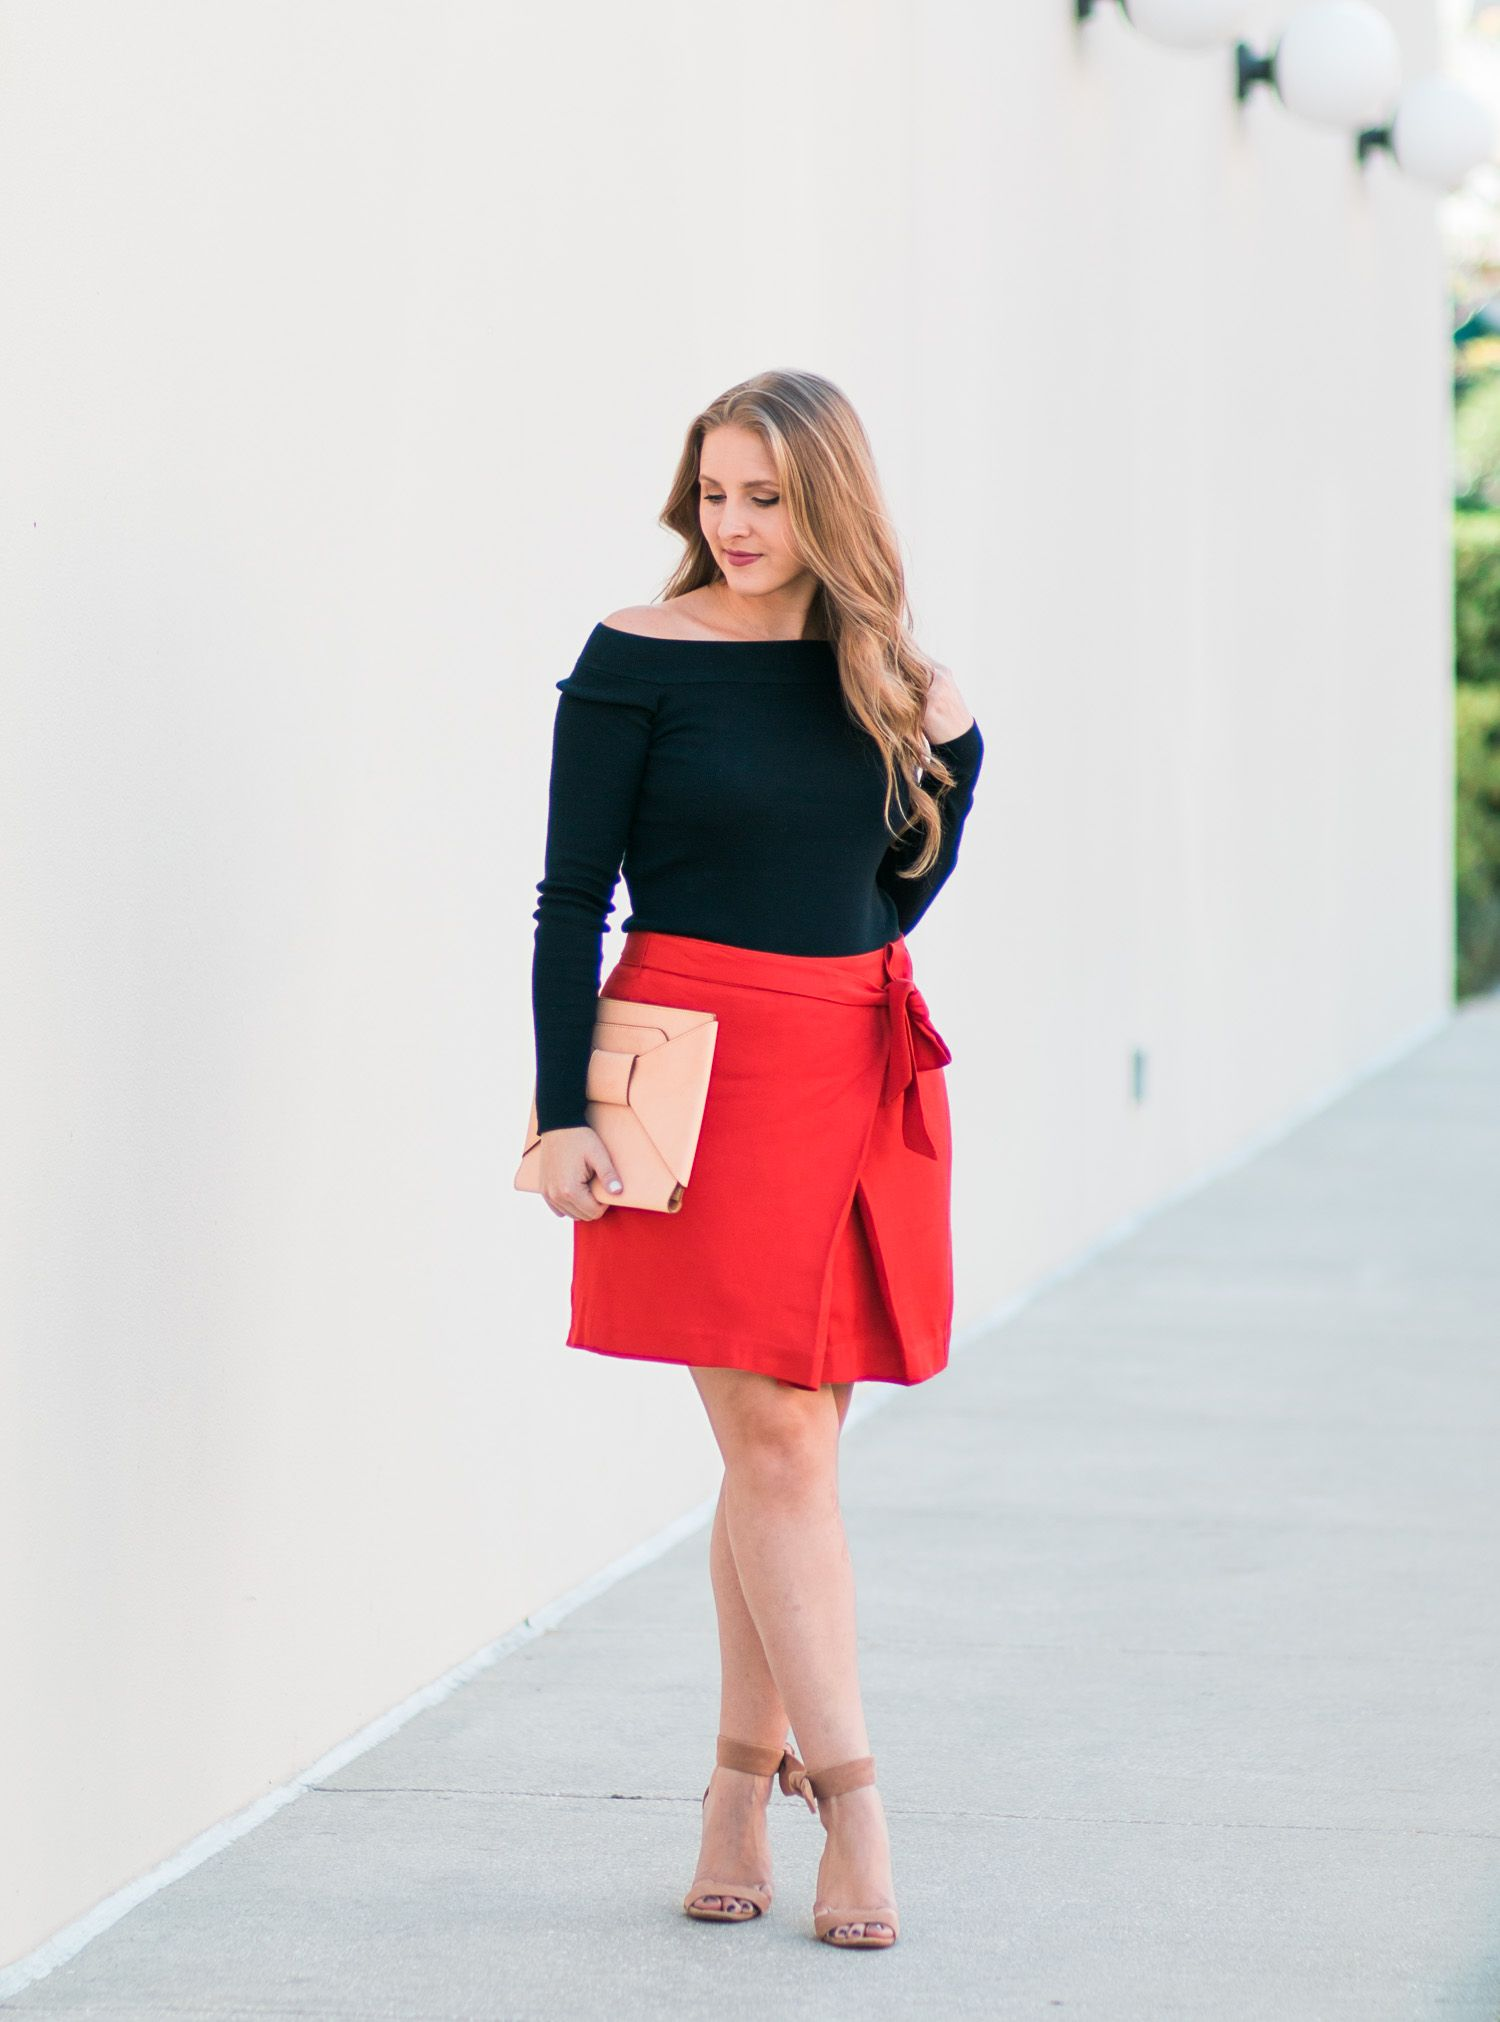 Classy Fall Outfit Idea | Bow skirt, Bow clutch and Banana republic